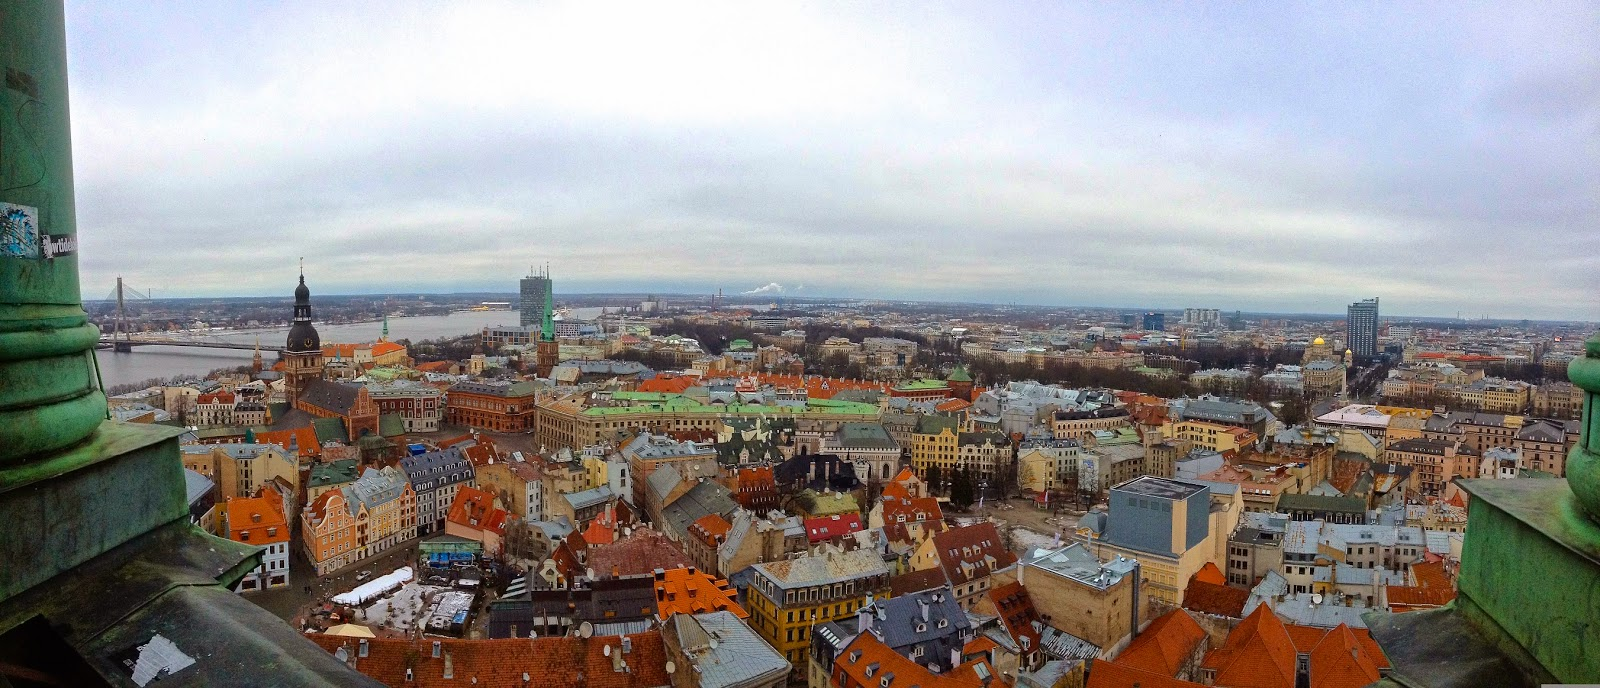 Riga city views